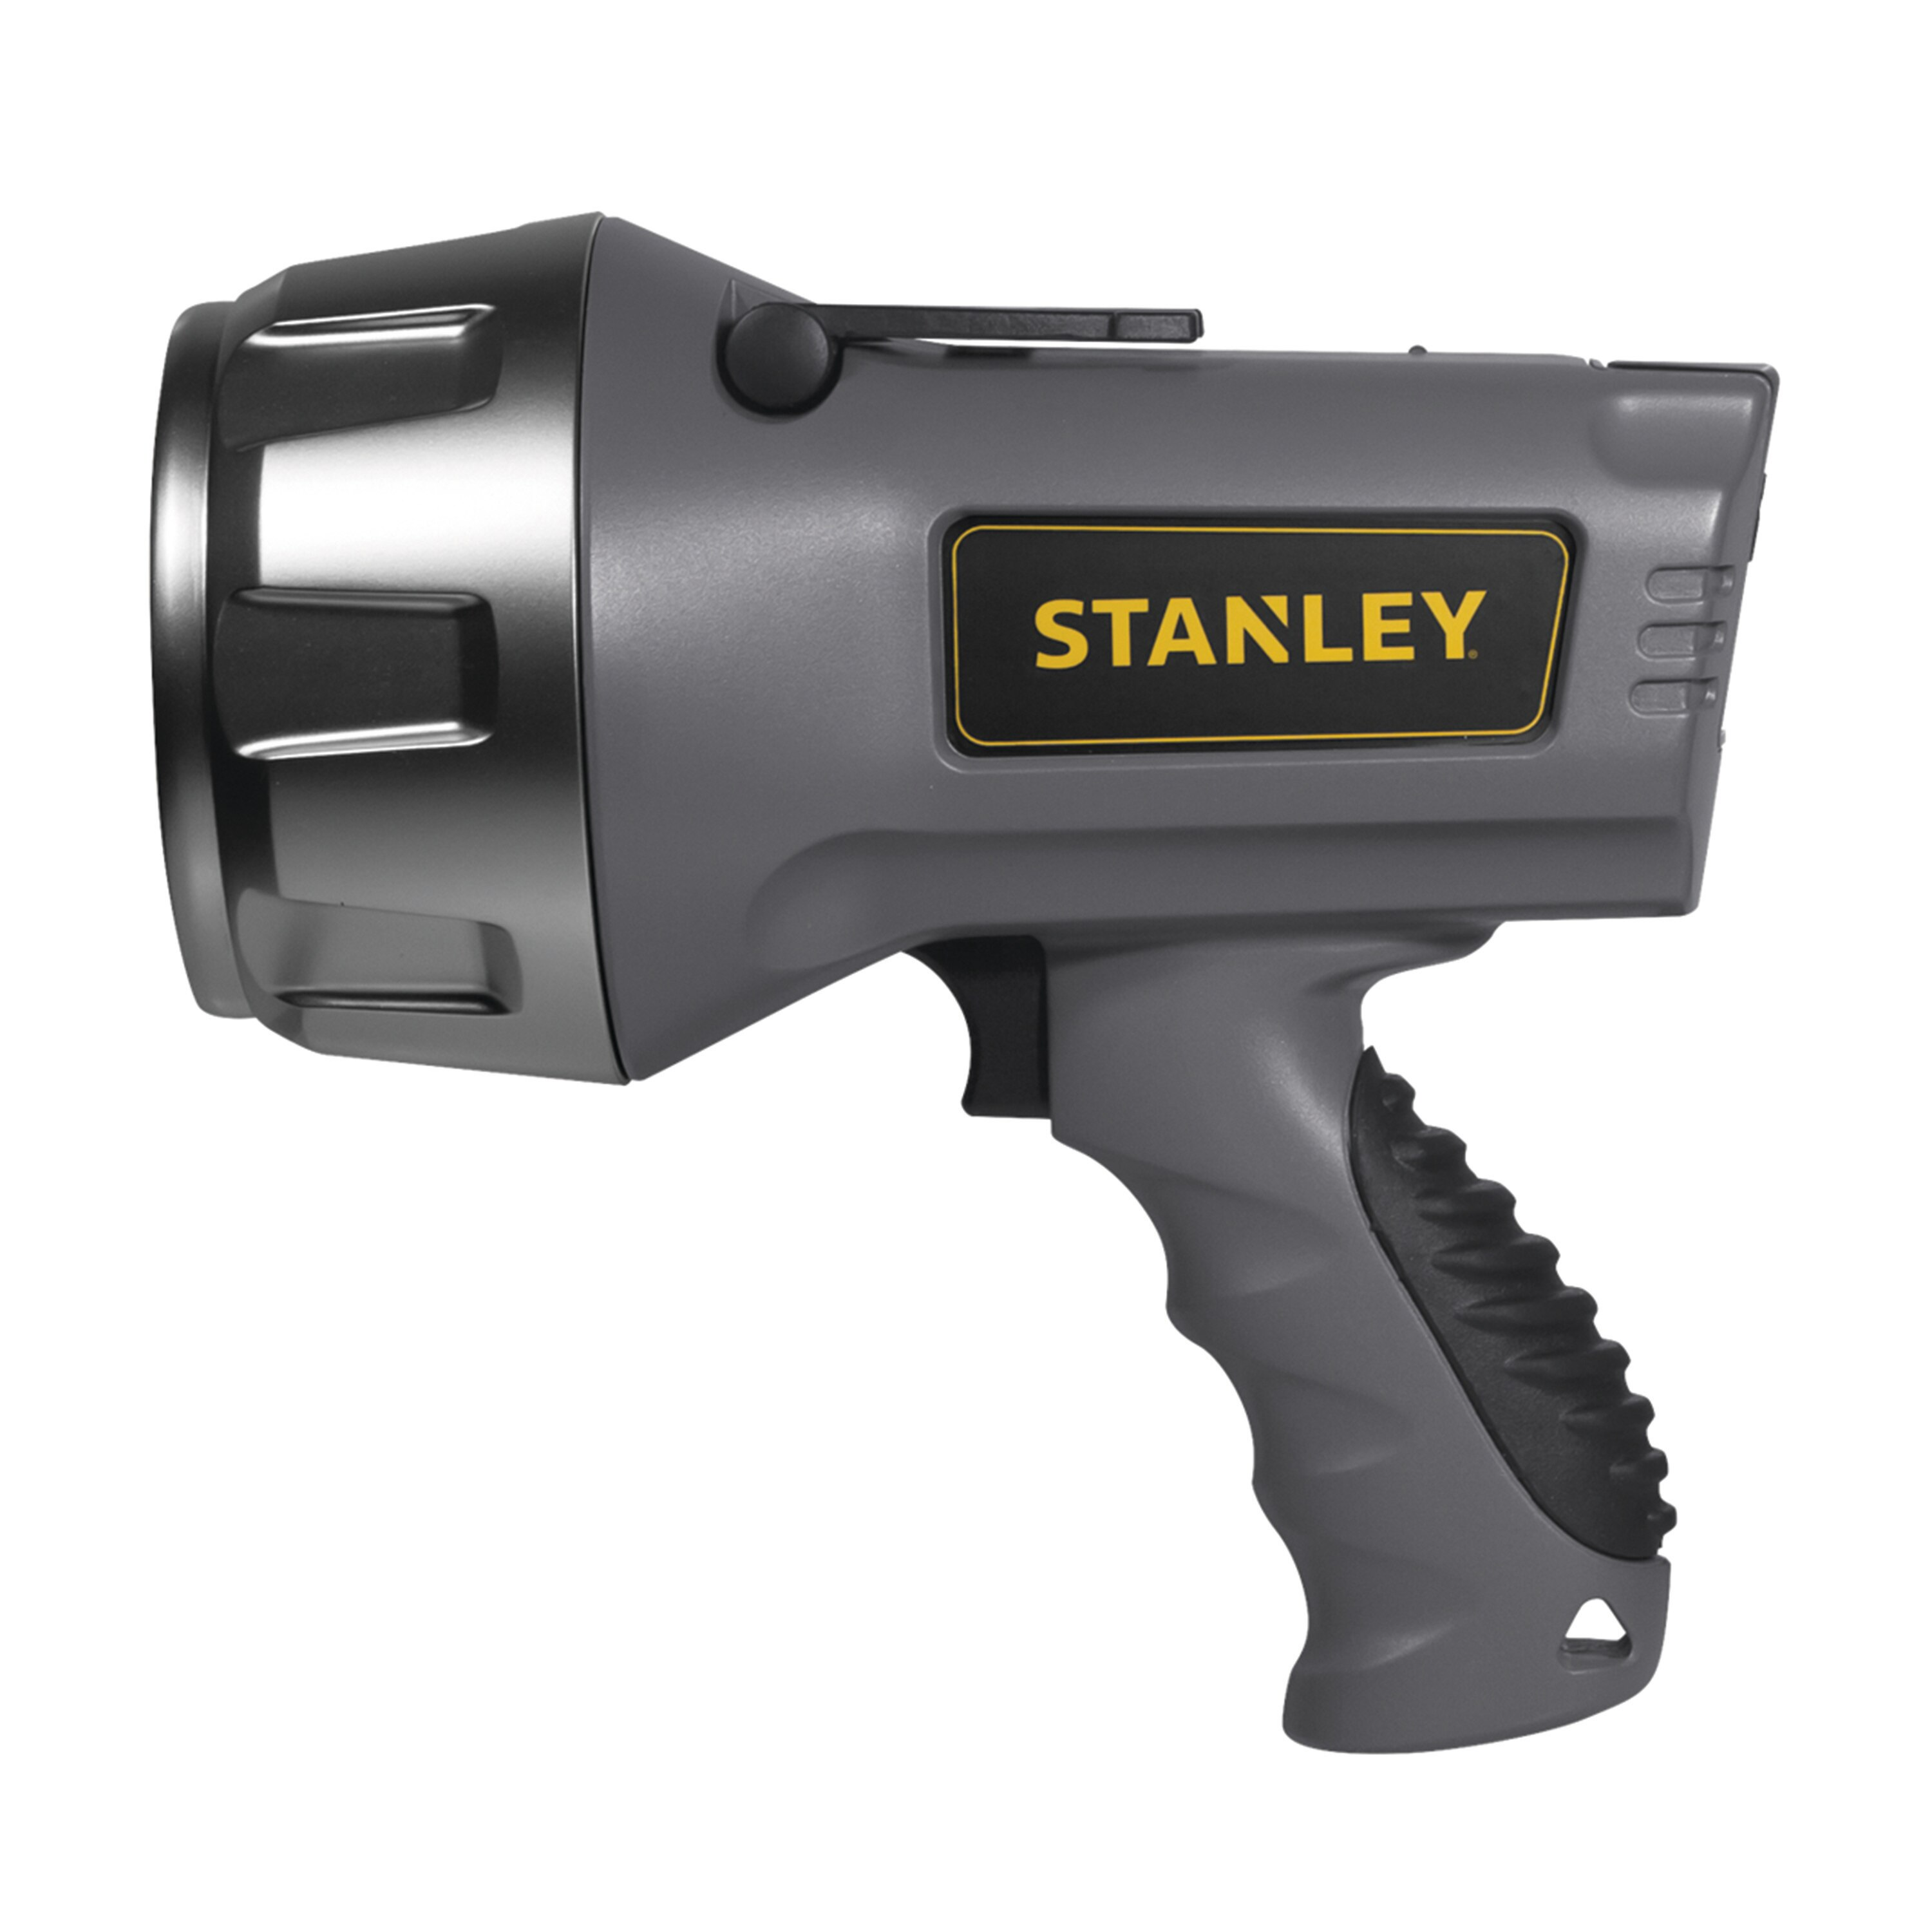 Stanley Tools - 5 Watt LED Lithium Ion Rechargeable Spotlight With HALO Power Saving Mode - SL5HS